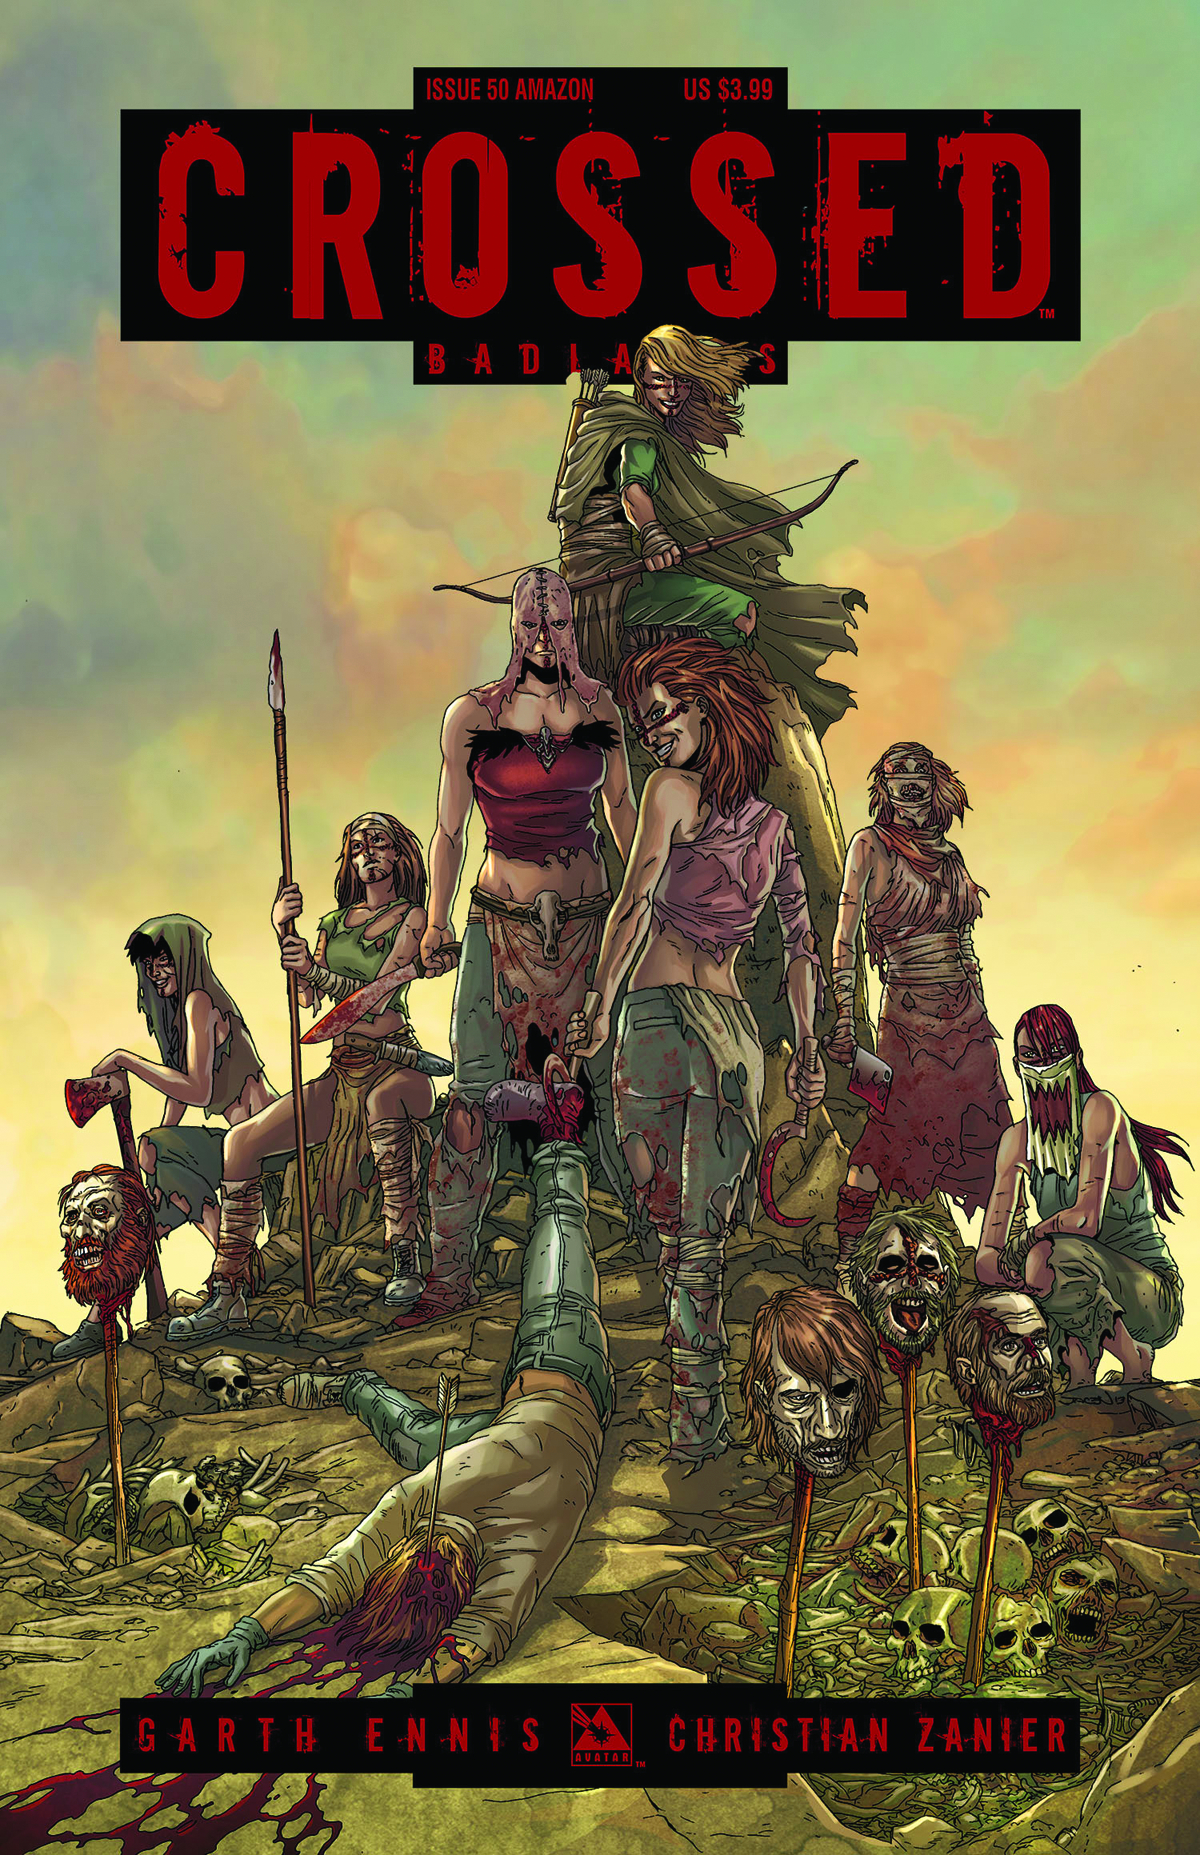 CROSSED BADLANDS #50 AMAZONS CVR